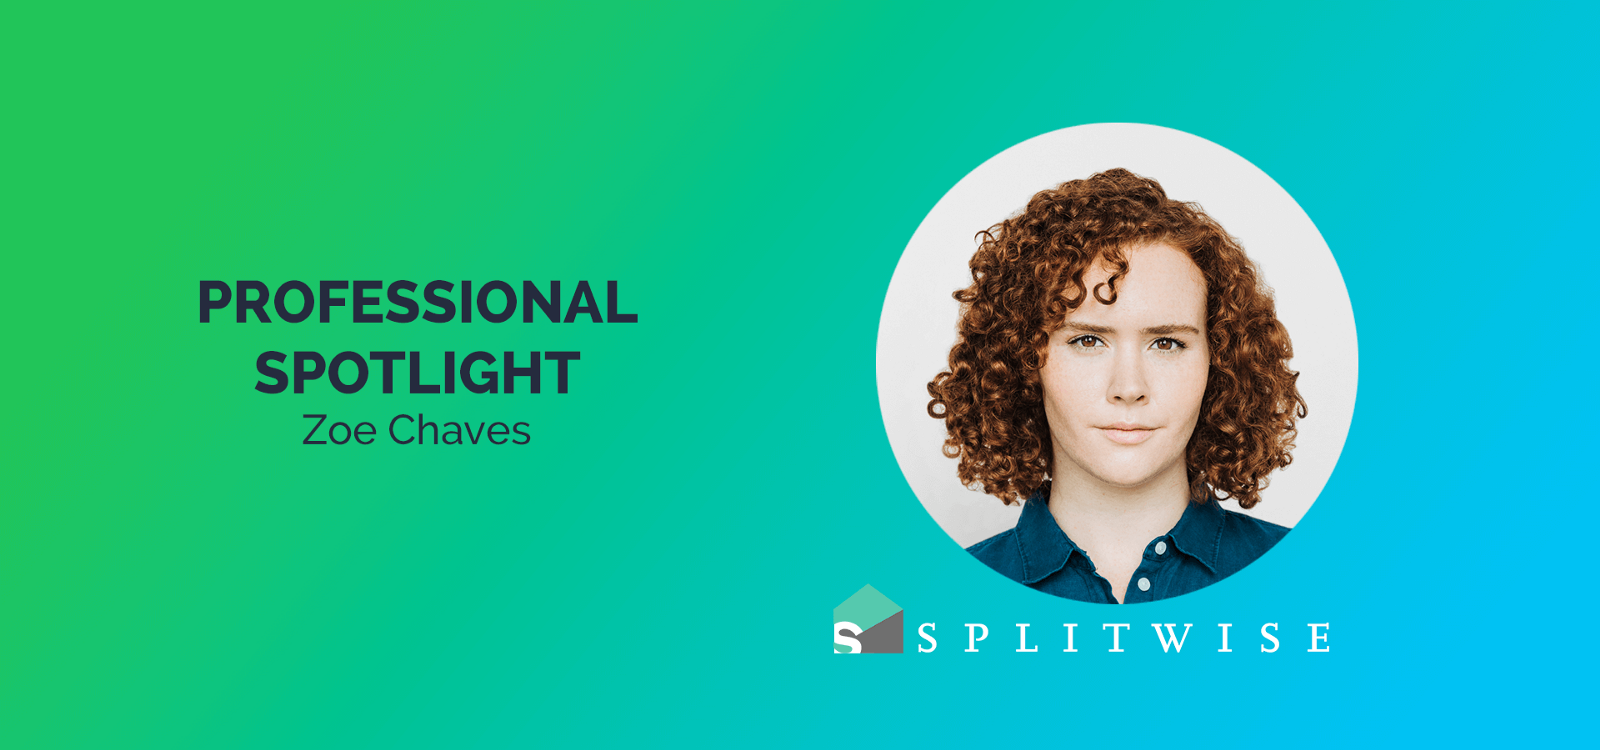 Professional Spotlight Zoe Chaves Of Splitwise Productcoalitioncom